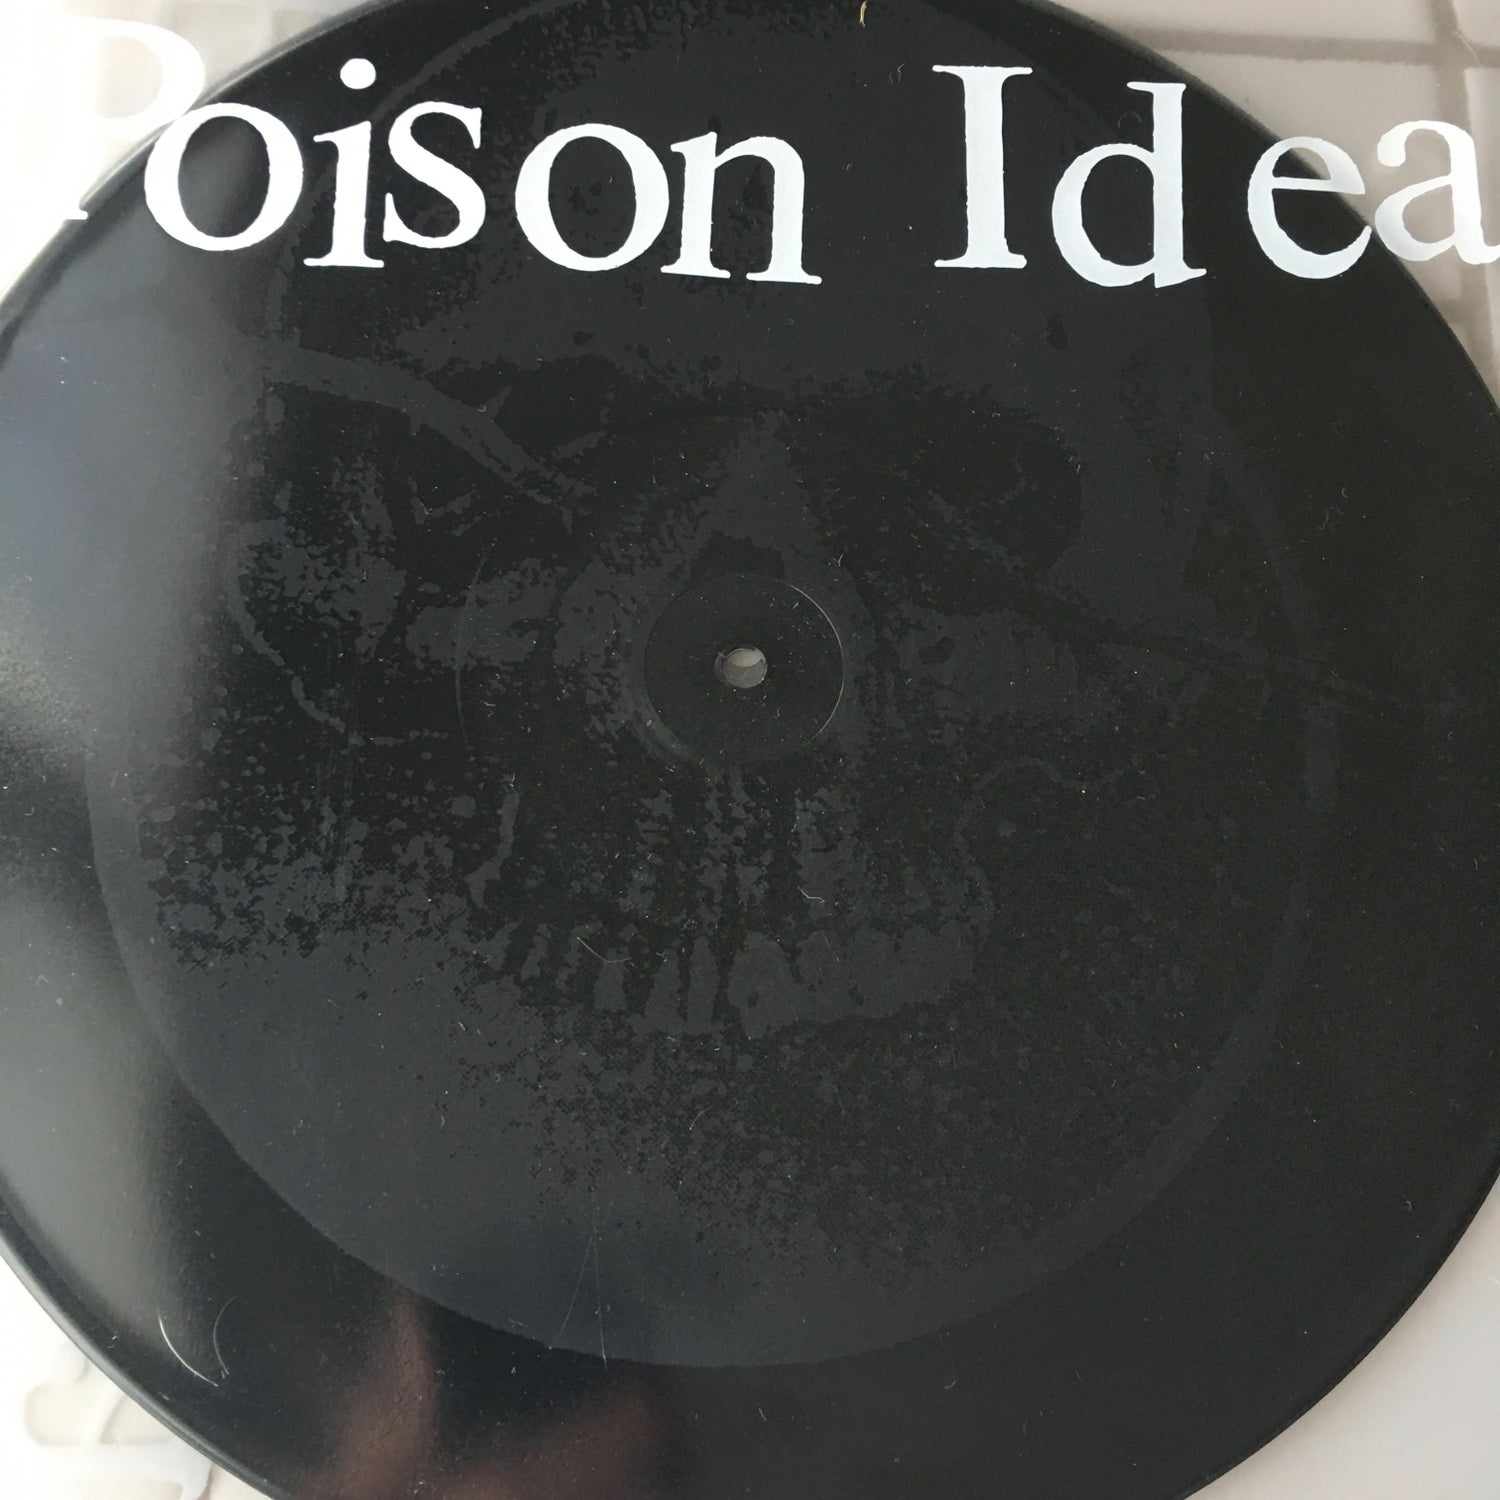 """Image of Poison Idea-""""Calling All Ghosts"""" 12"""" ep with etching 2016"""